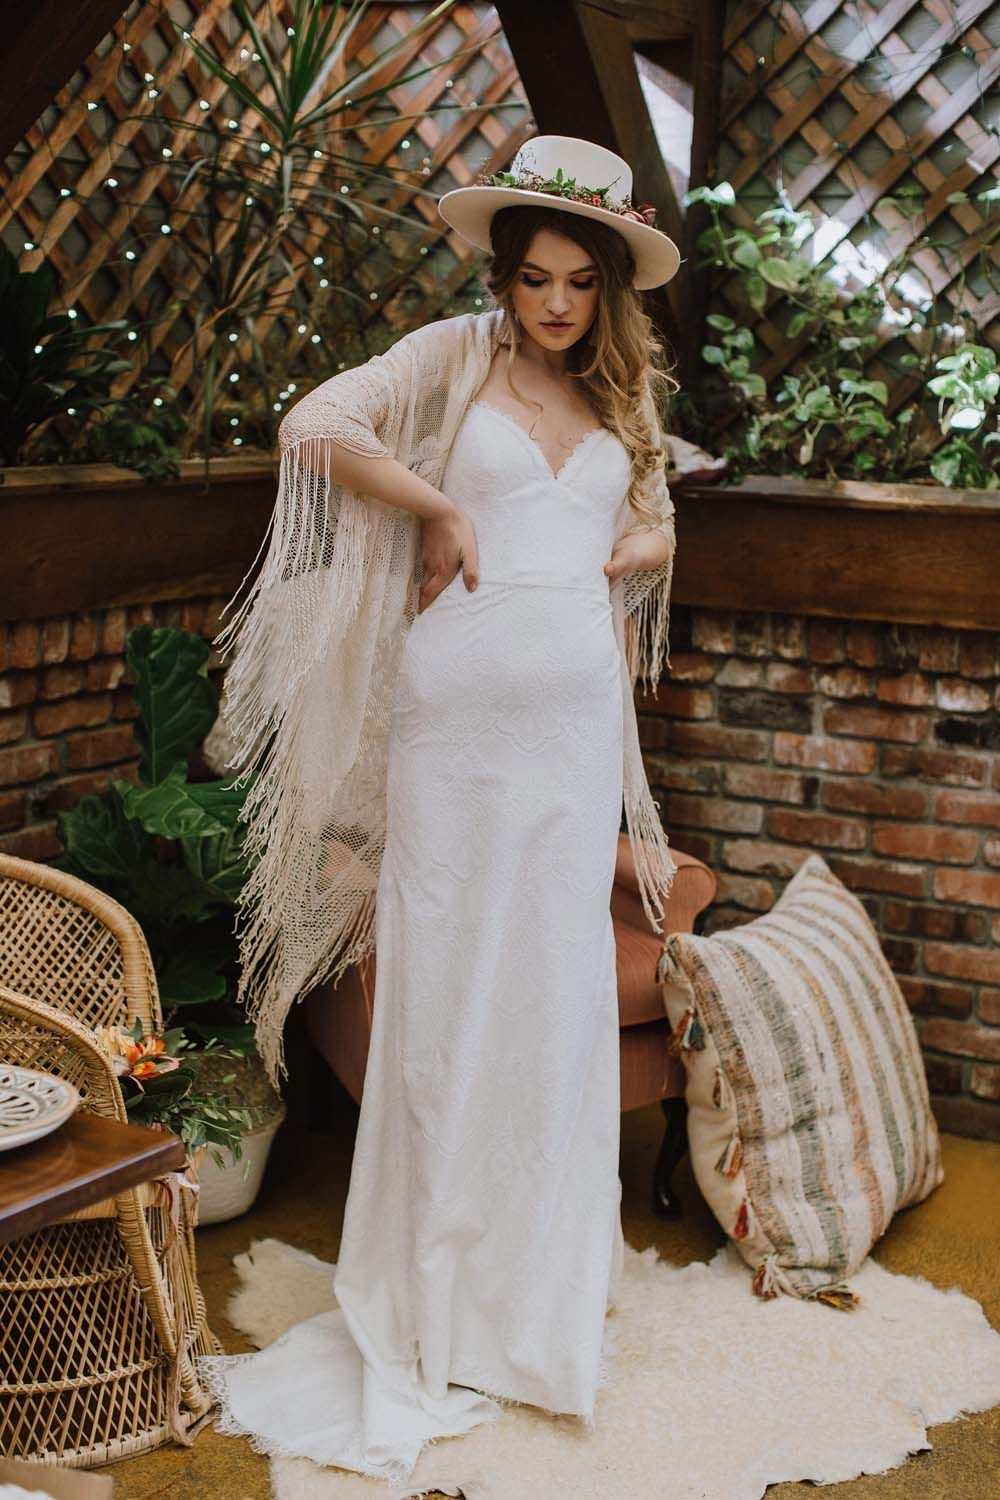 f134c10722f These Are The Details You Need For A Southwestern-Inspired Wedding ...